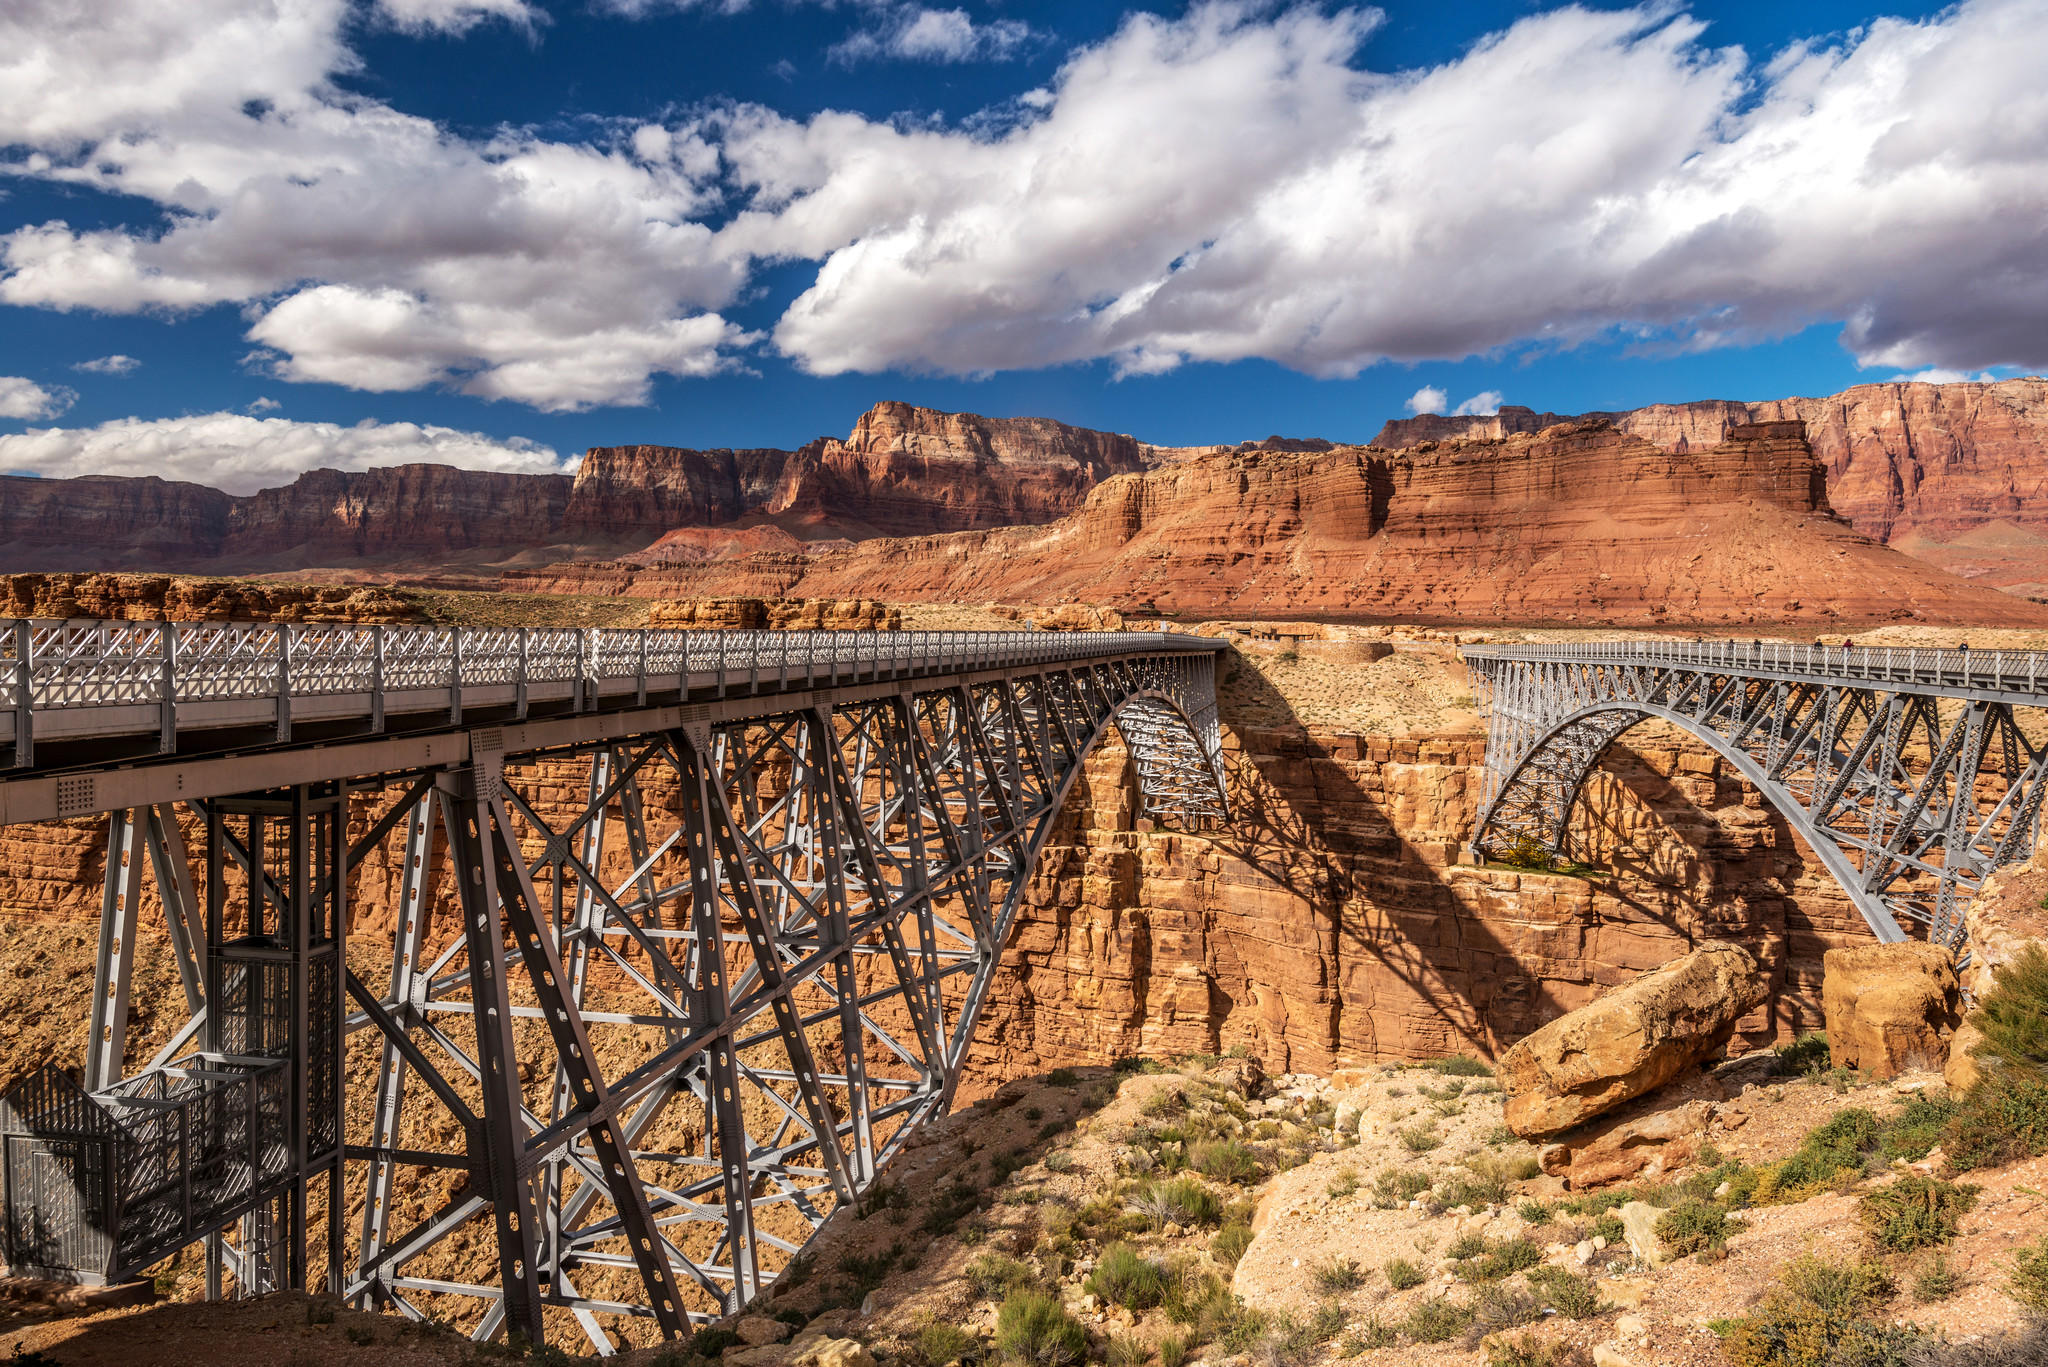 Navajo Bridge in Marble Canyon, Arizona. (Panoramic Images / Getty Images)